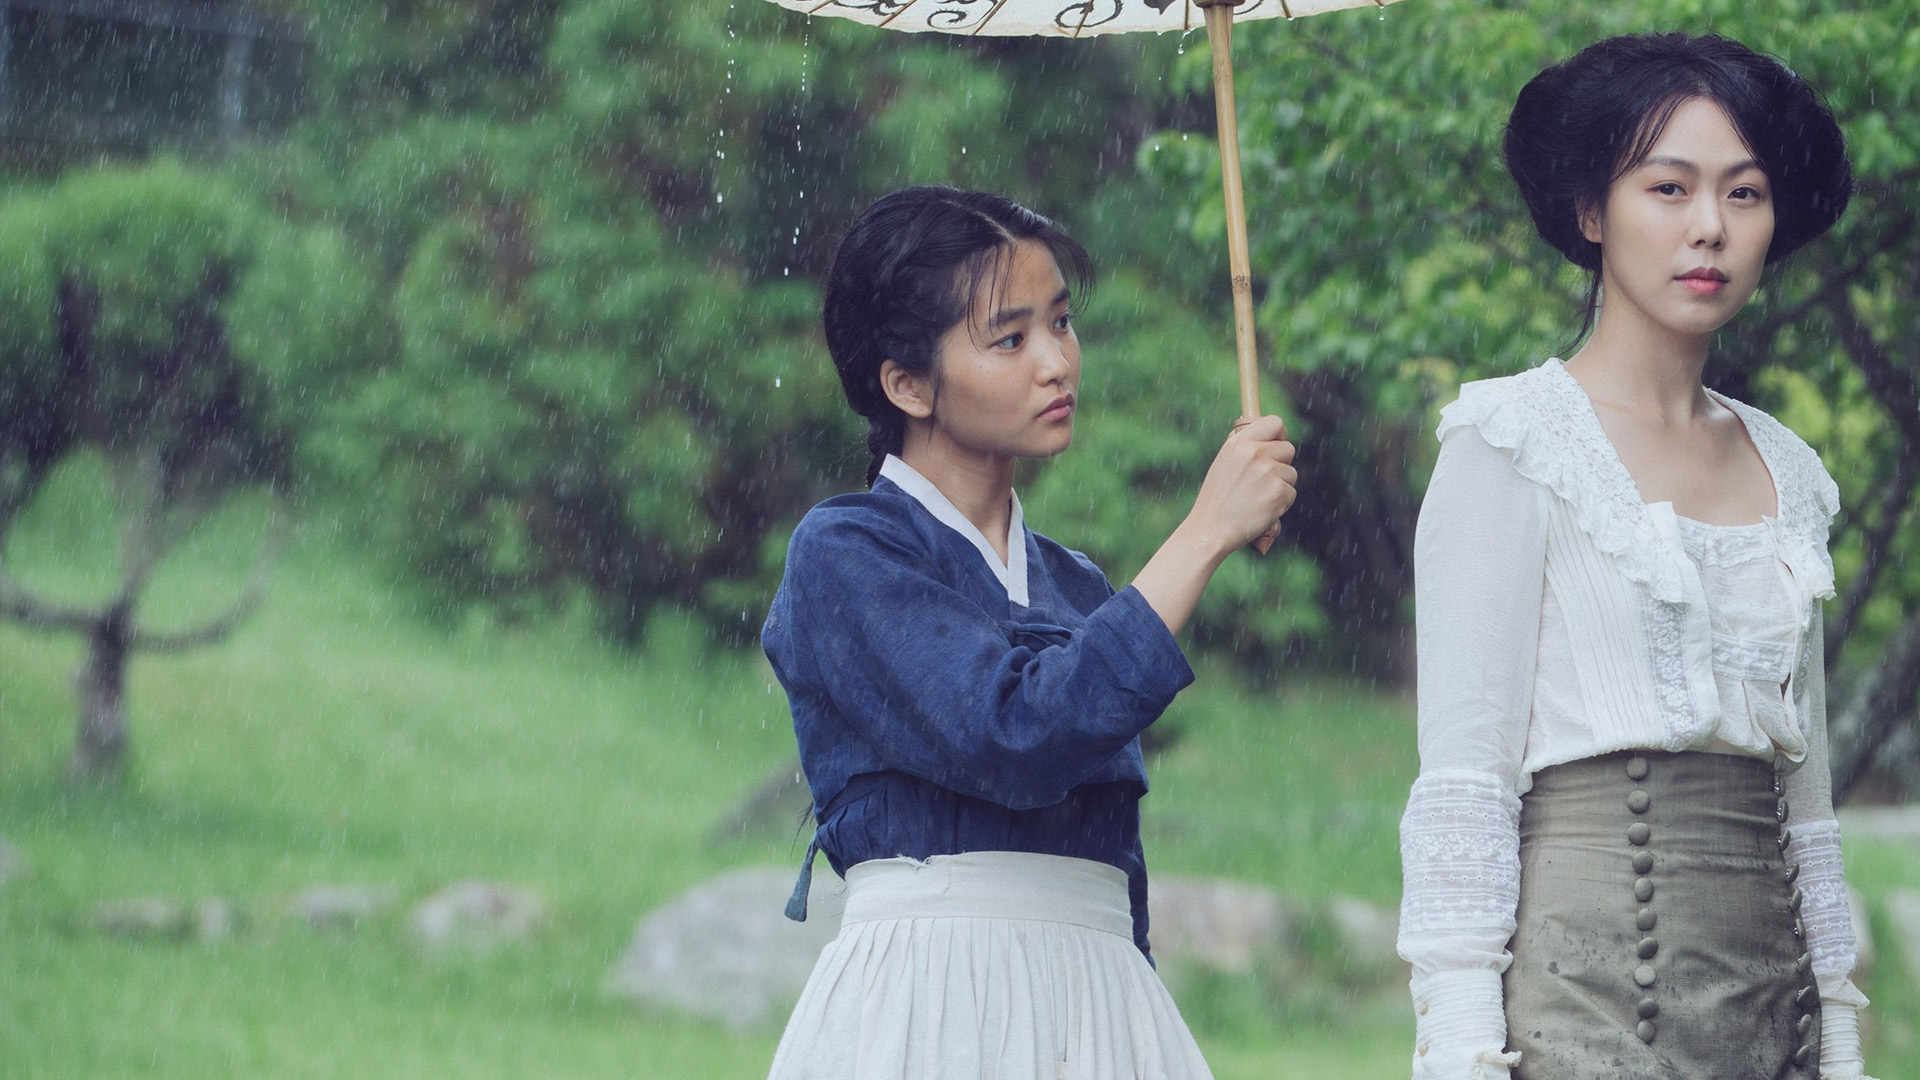 Sook-hee holds a parasol over Izumi's head.